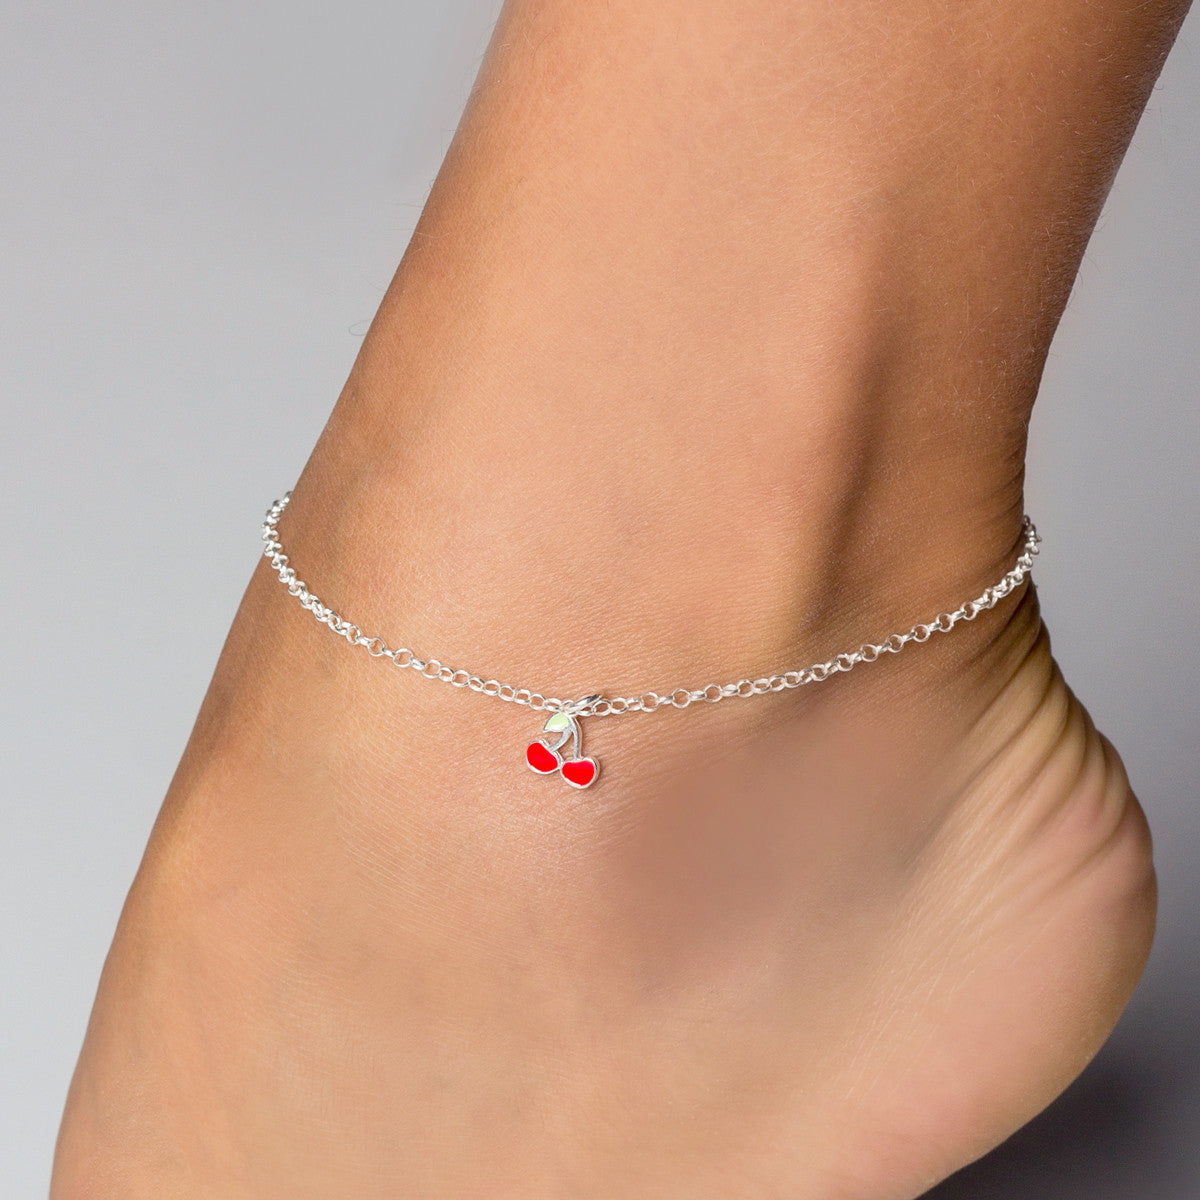 item ladies in sterling ankle jewelry chain beach accessories anklets sliver from femme silver anklet women bracelet feet jewellery foot bracelets cheville